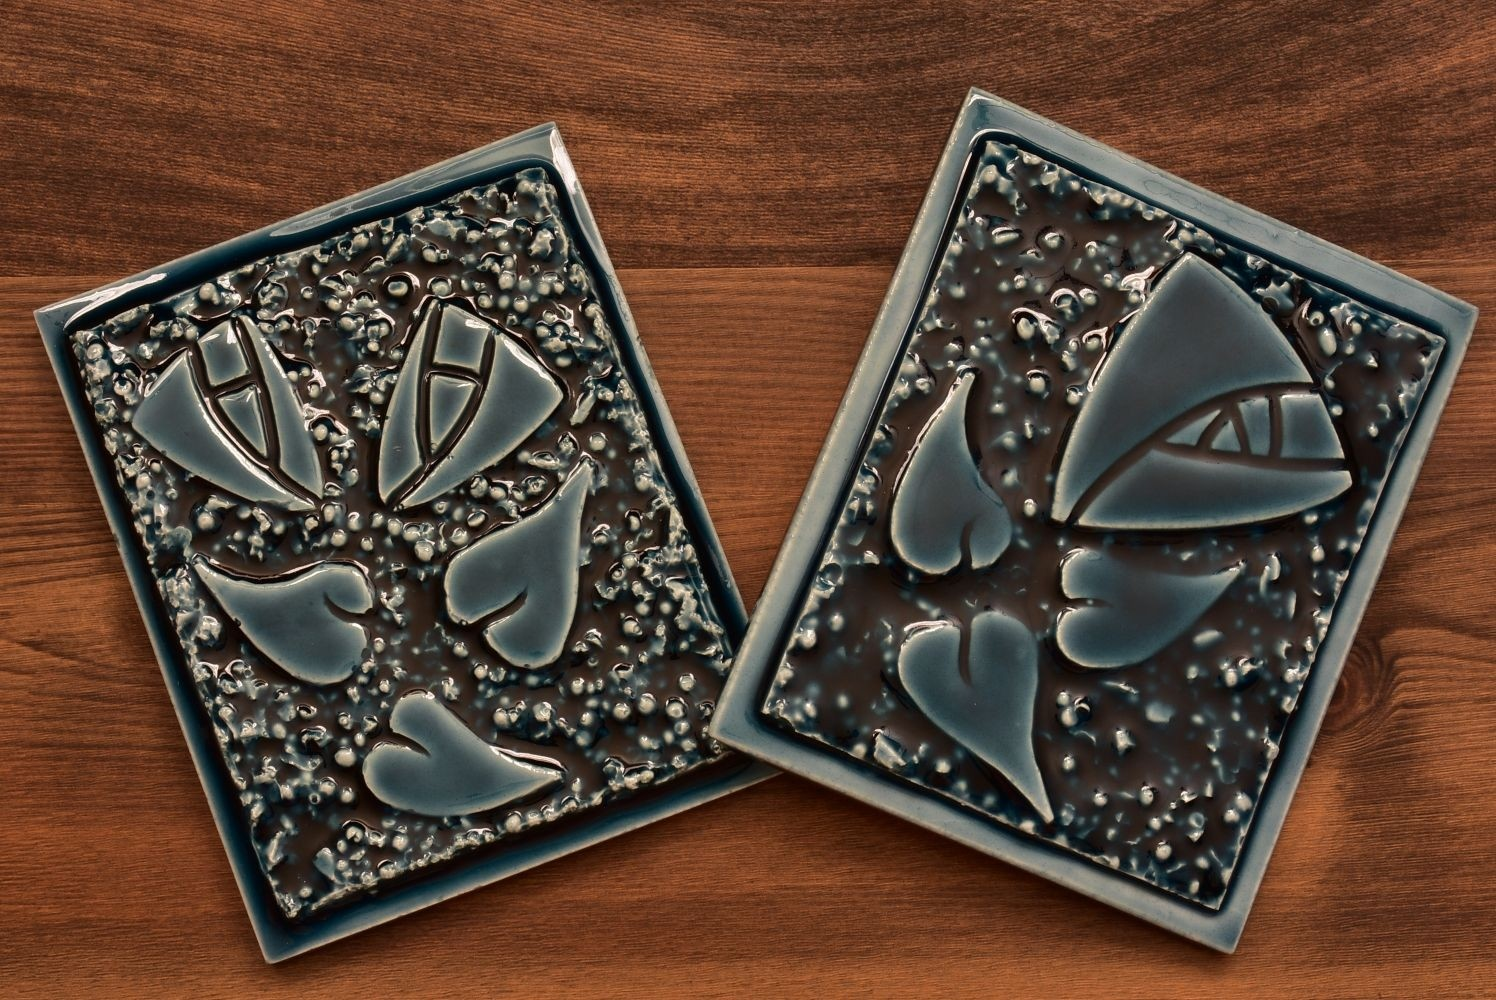 Roseville Pottery 2020 Midnight Blue Mostique Rose Tile Set